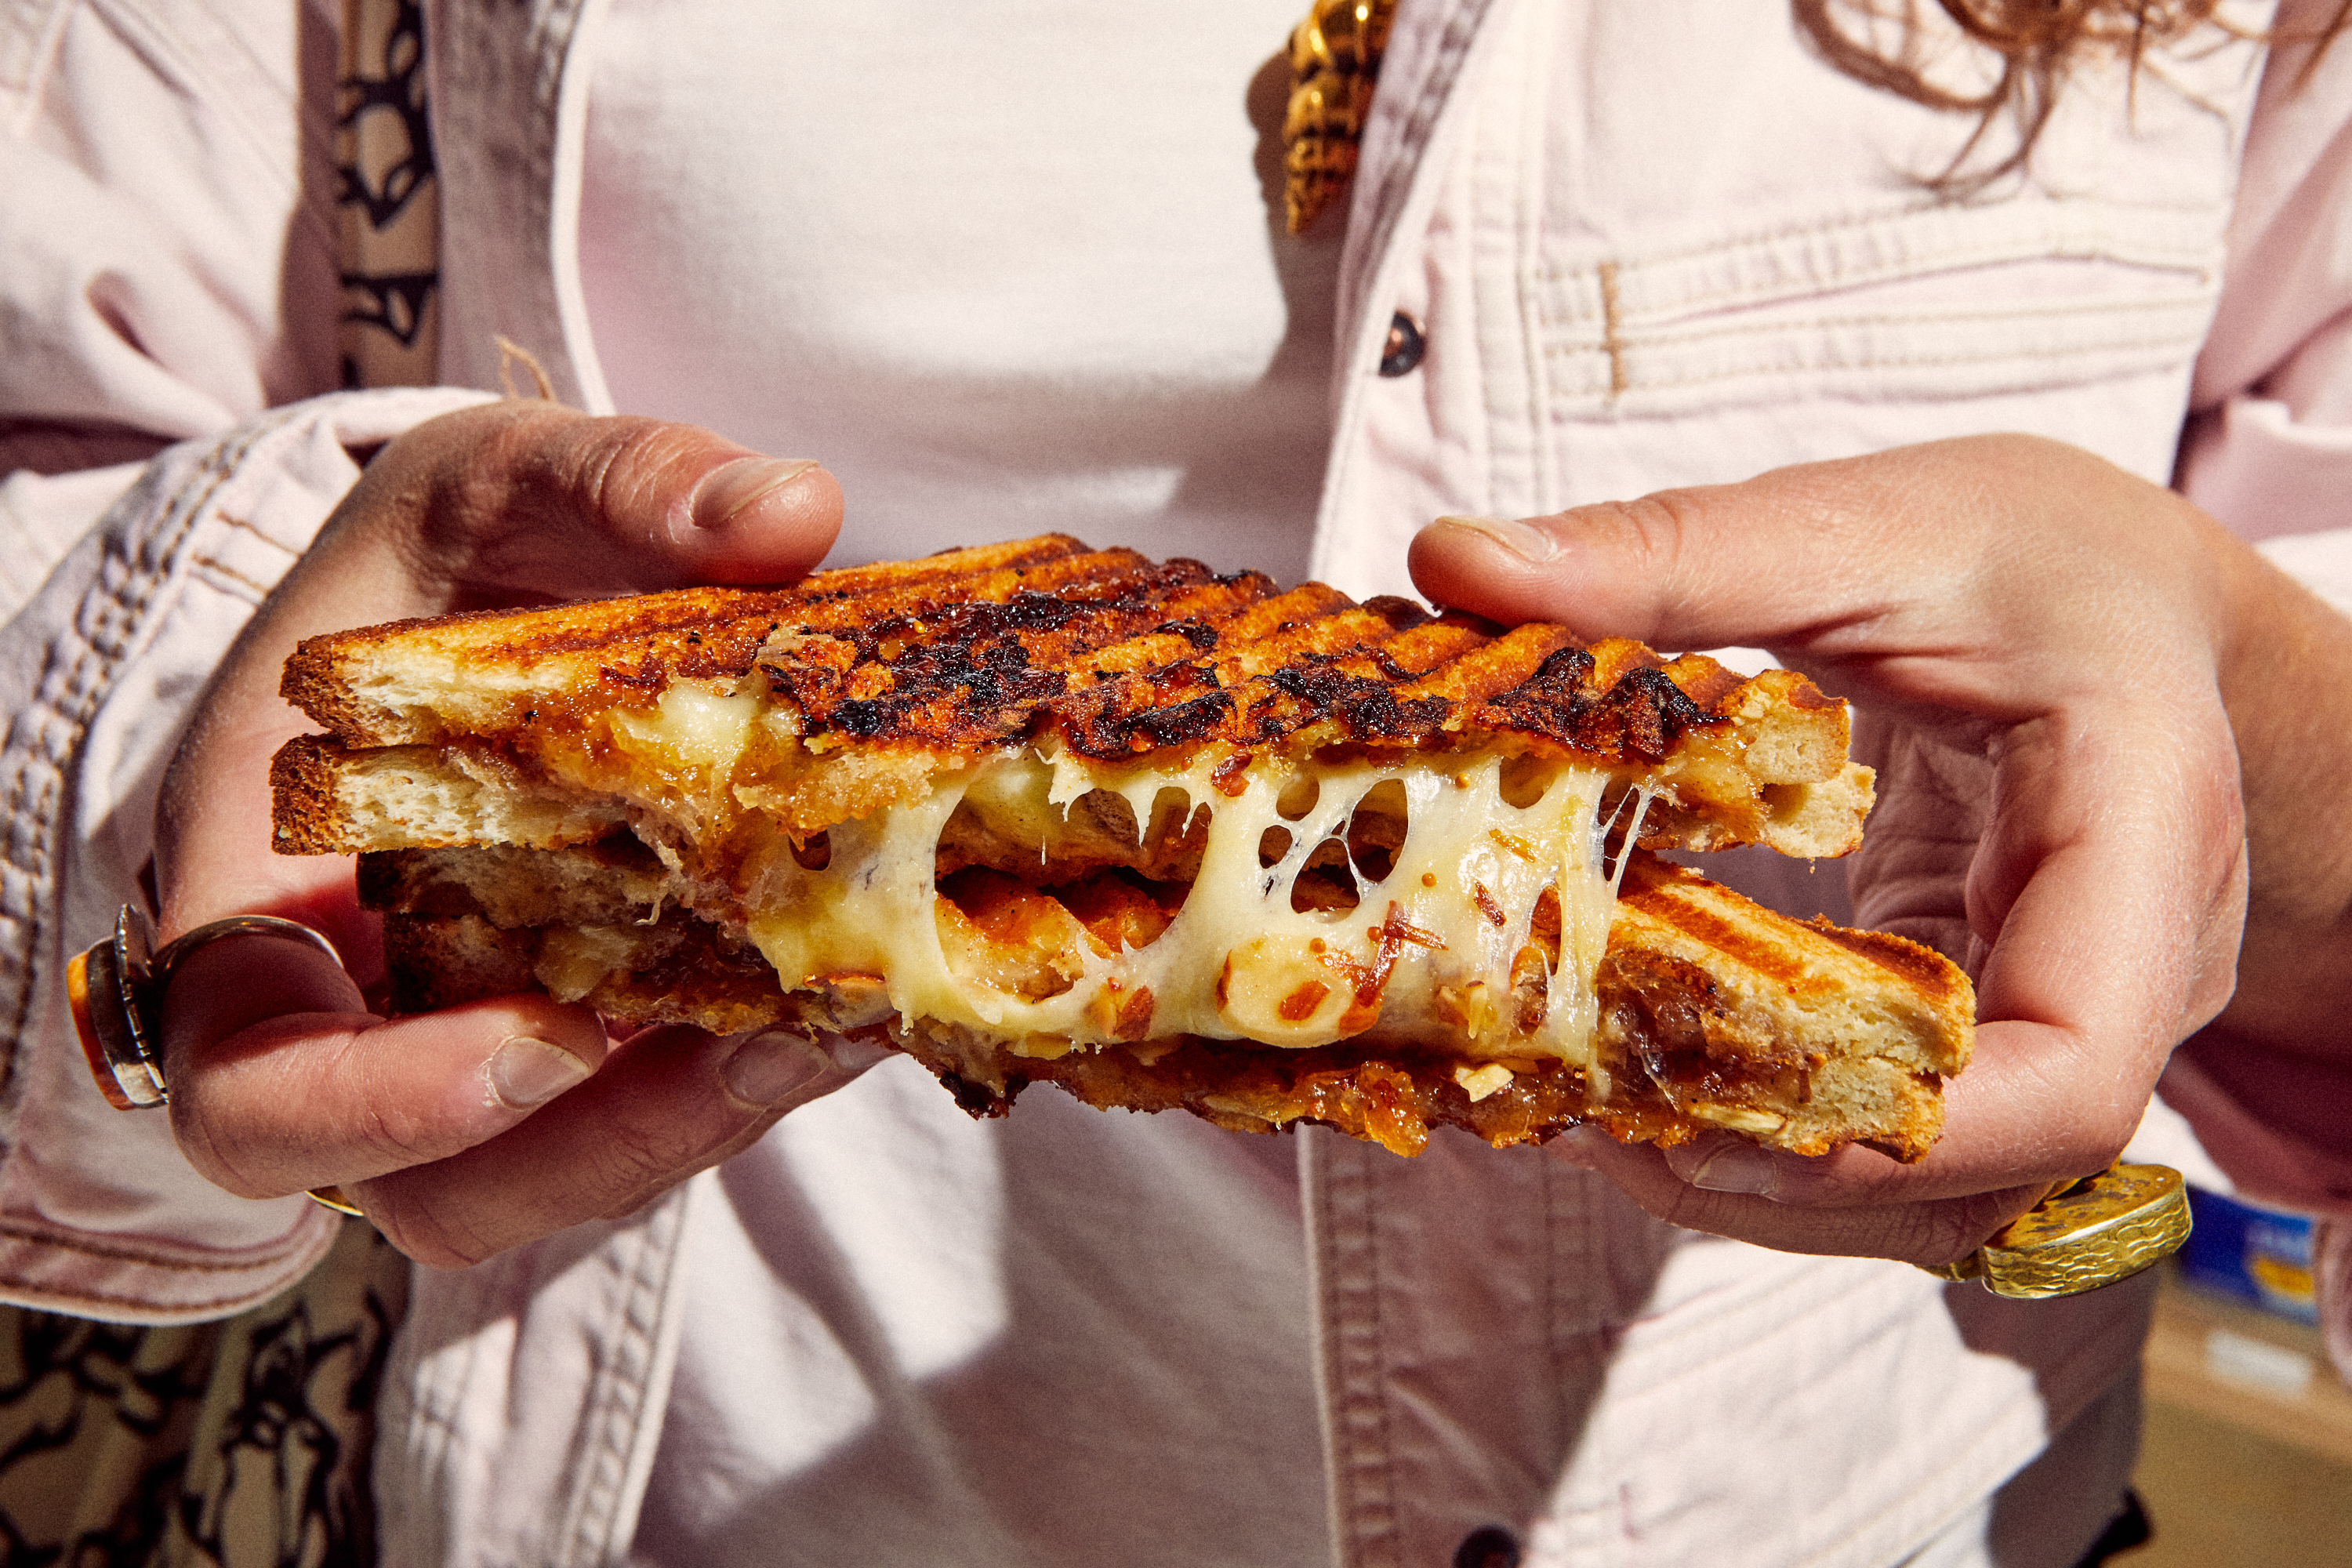 Gooey grilled cheese held by someone in an off-white shirt